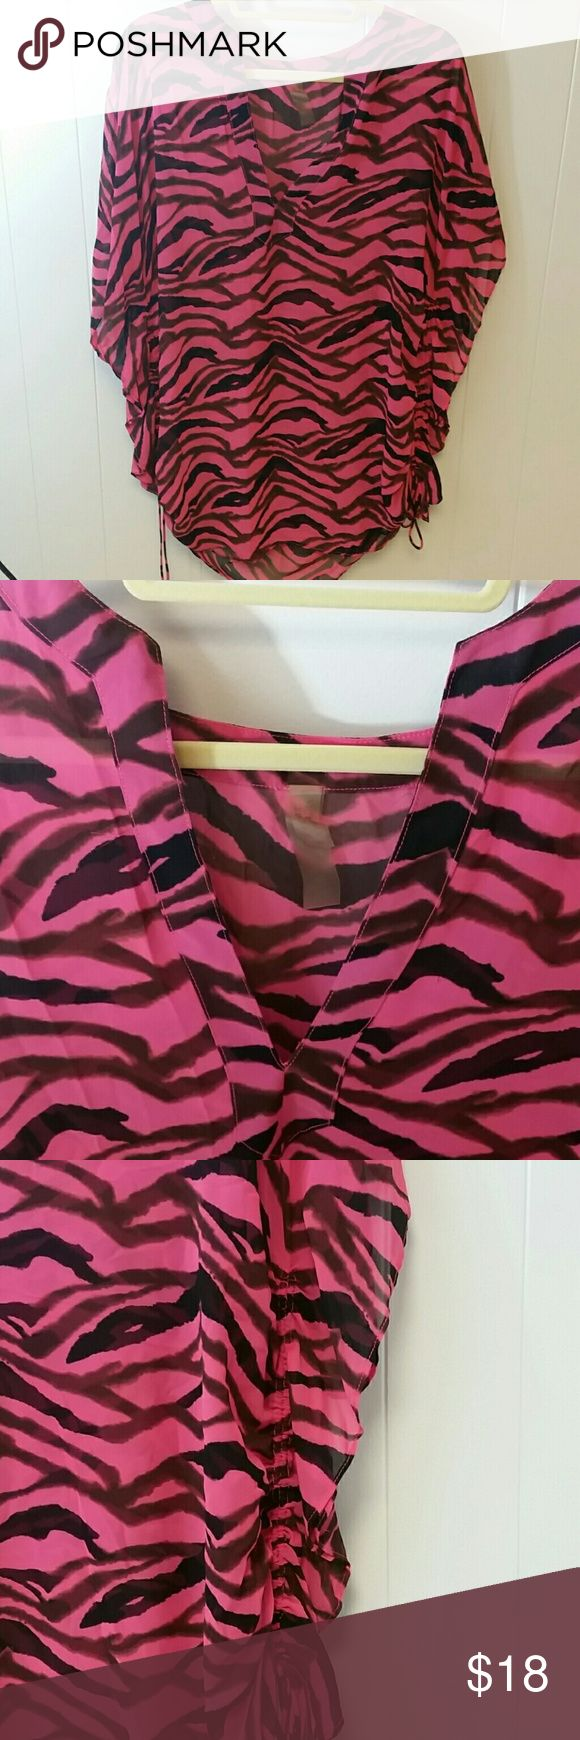 Victoria Secret bathing suit cover up. Extremely flattering zebra print cover up with side ties to pull it up on each of the sides. Size on tag says m/L Victoria's Secret Swim Coverups